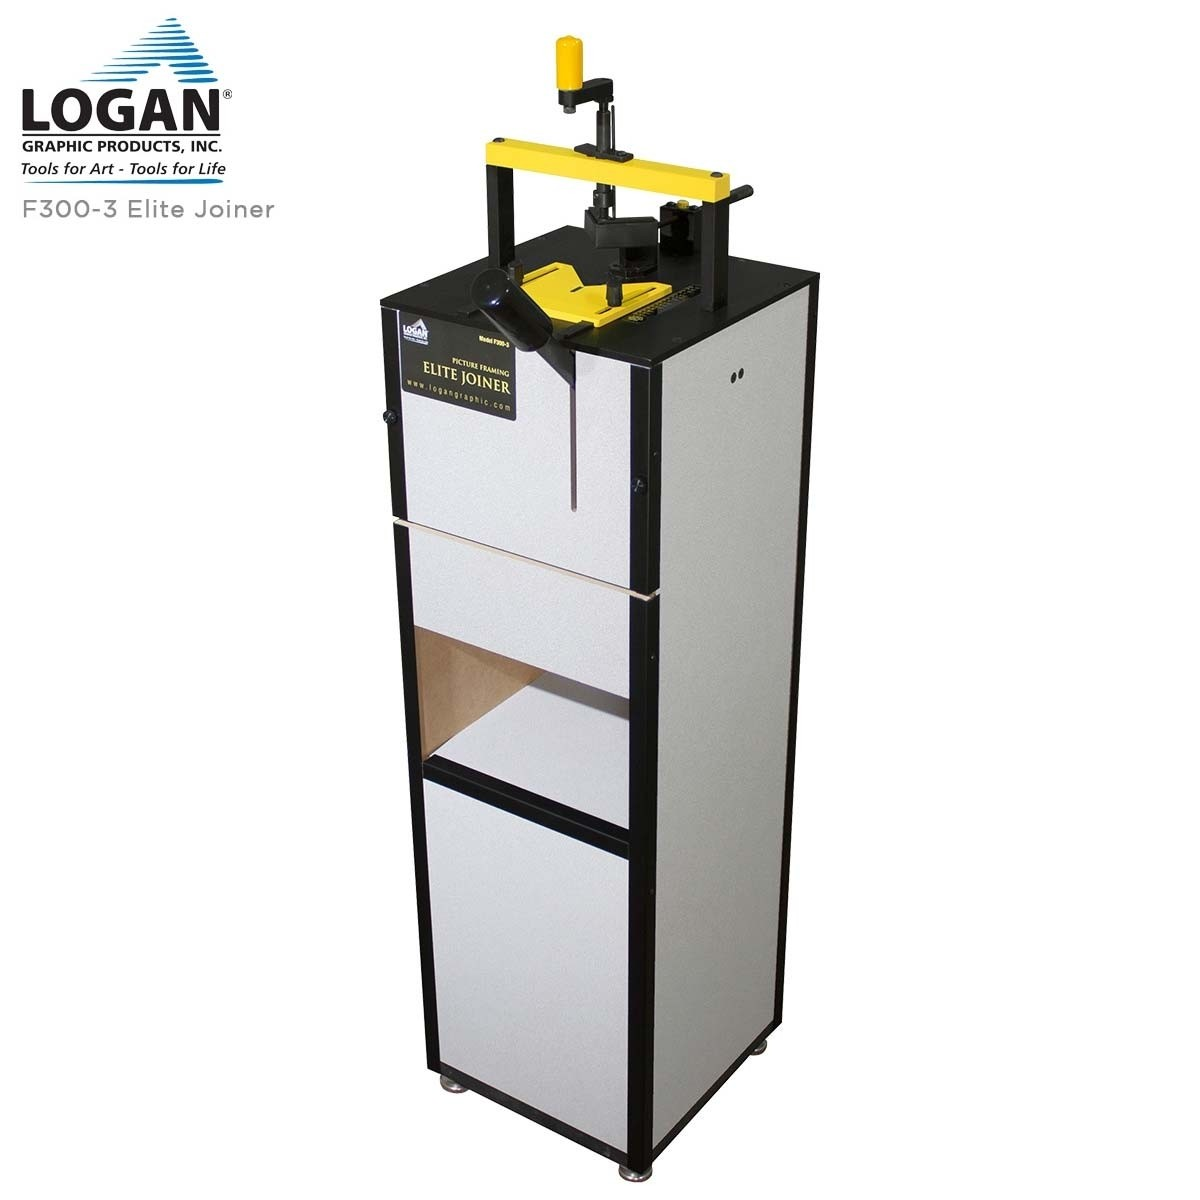 Logan F300-3 Elite Joiner and Accessories